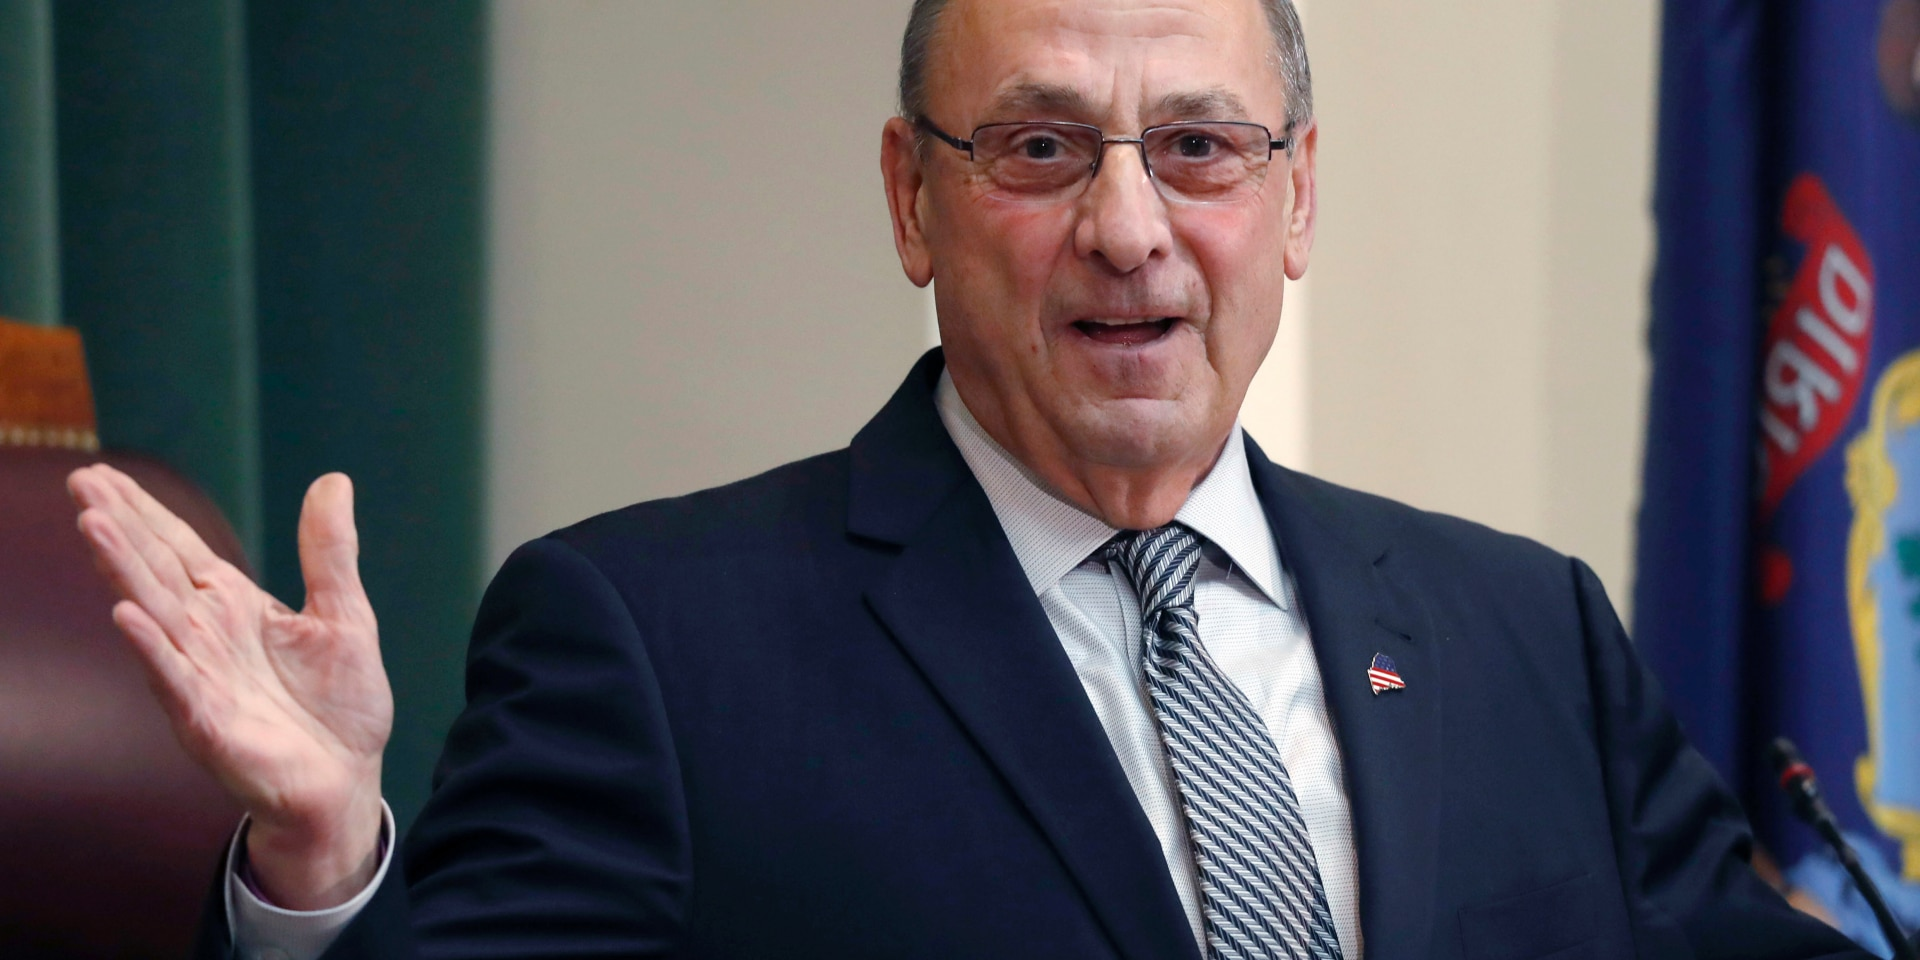 FILE - In this Feb. 13, 2018, file photo, Gov. Paul LePage delivers the State of the State address to the Legislature at the State House in Augusta, Maine. In March 2019 the state released a list of the 115 people pardoned by former Gov. LePage following a public records request by The Associated Press. (AP Photo/Robert F. Bukaty, File)